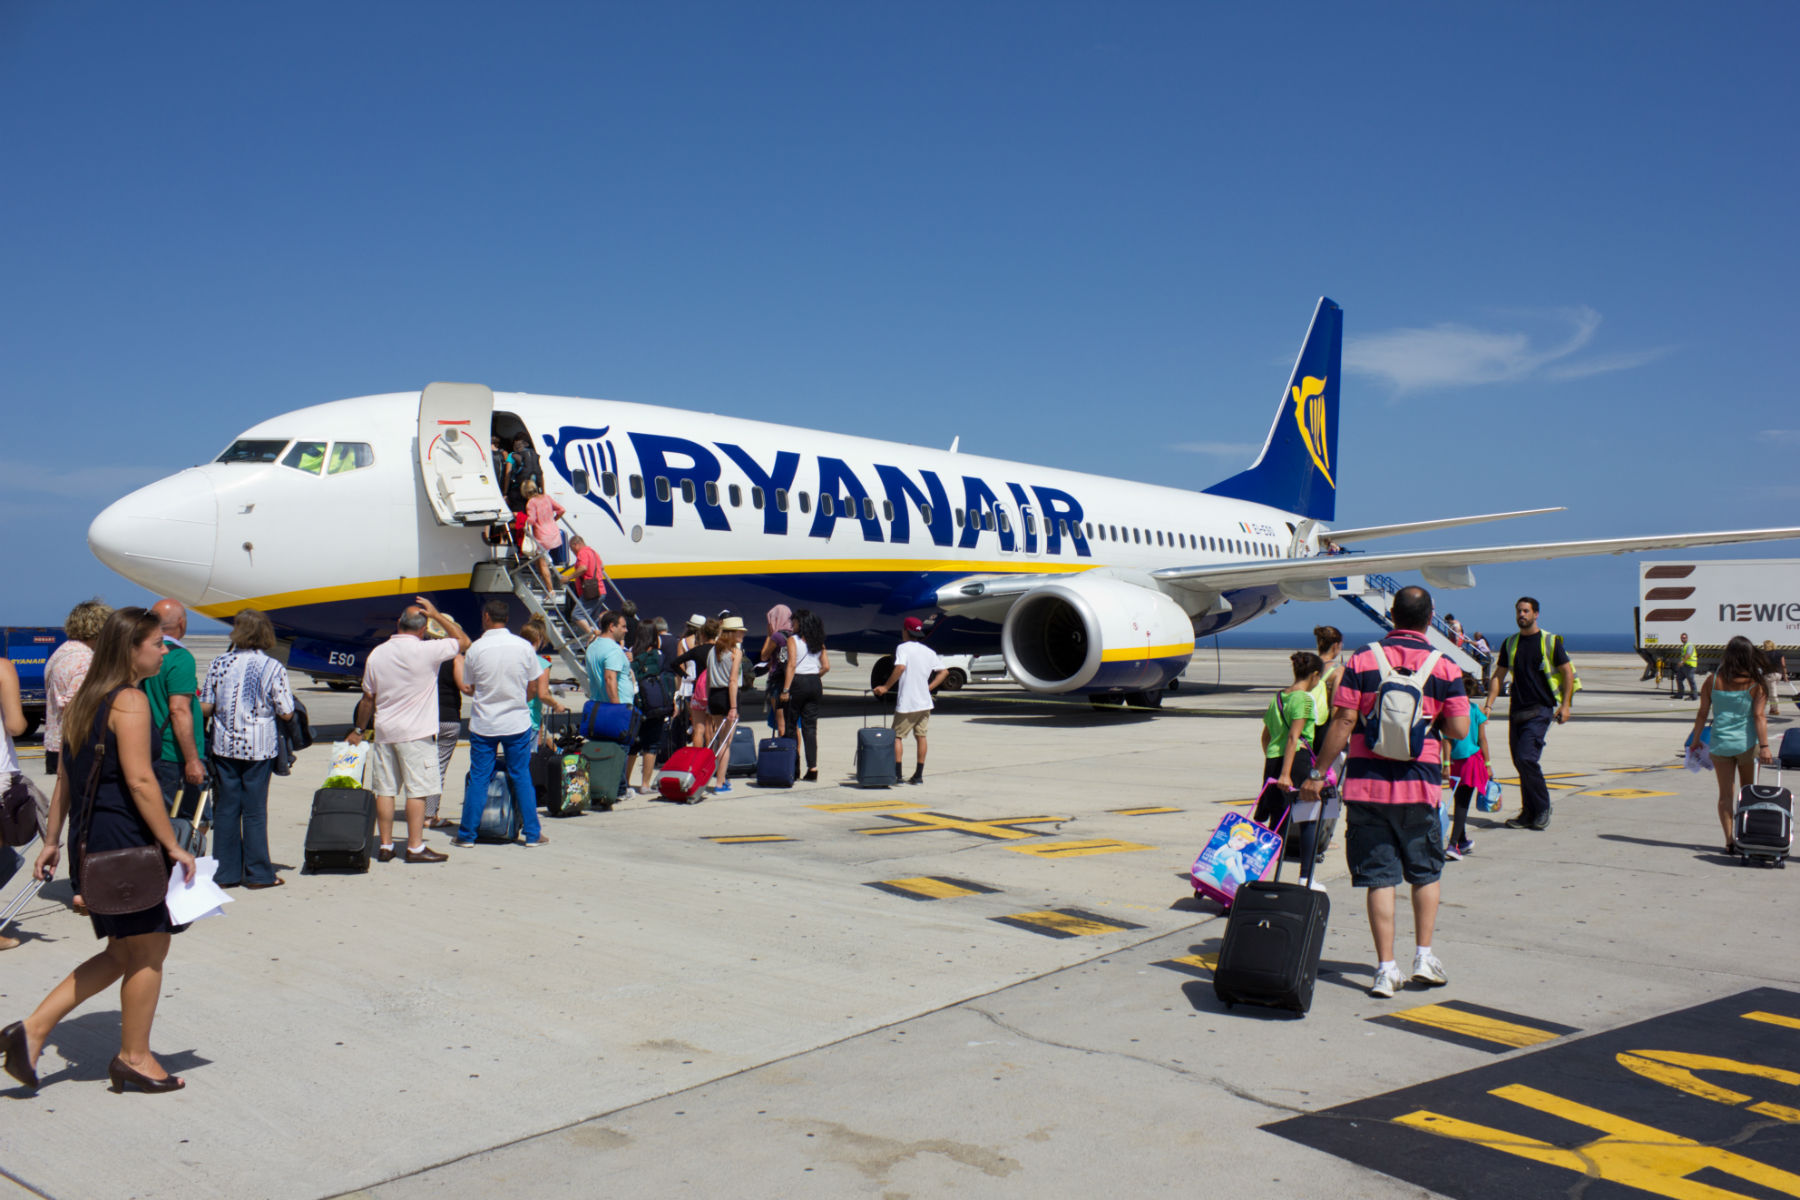 How to drive home if your Ryanair flight is cancelled